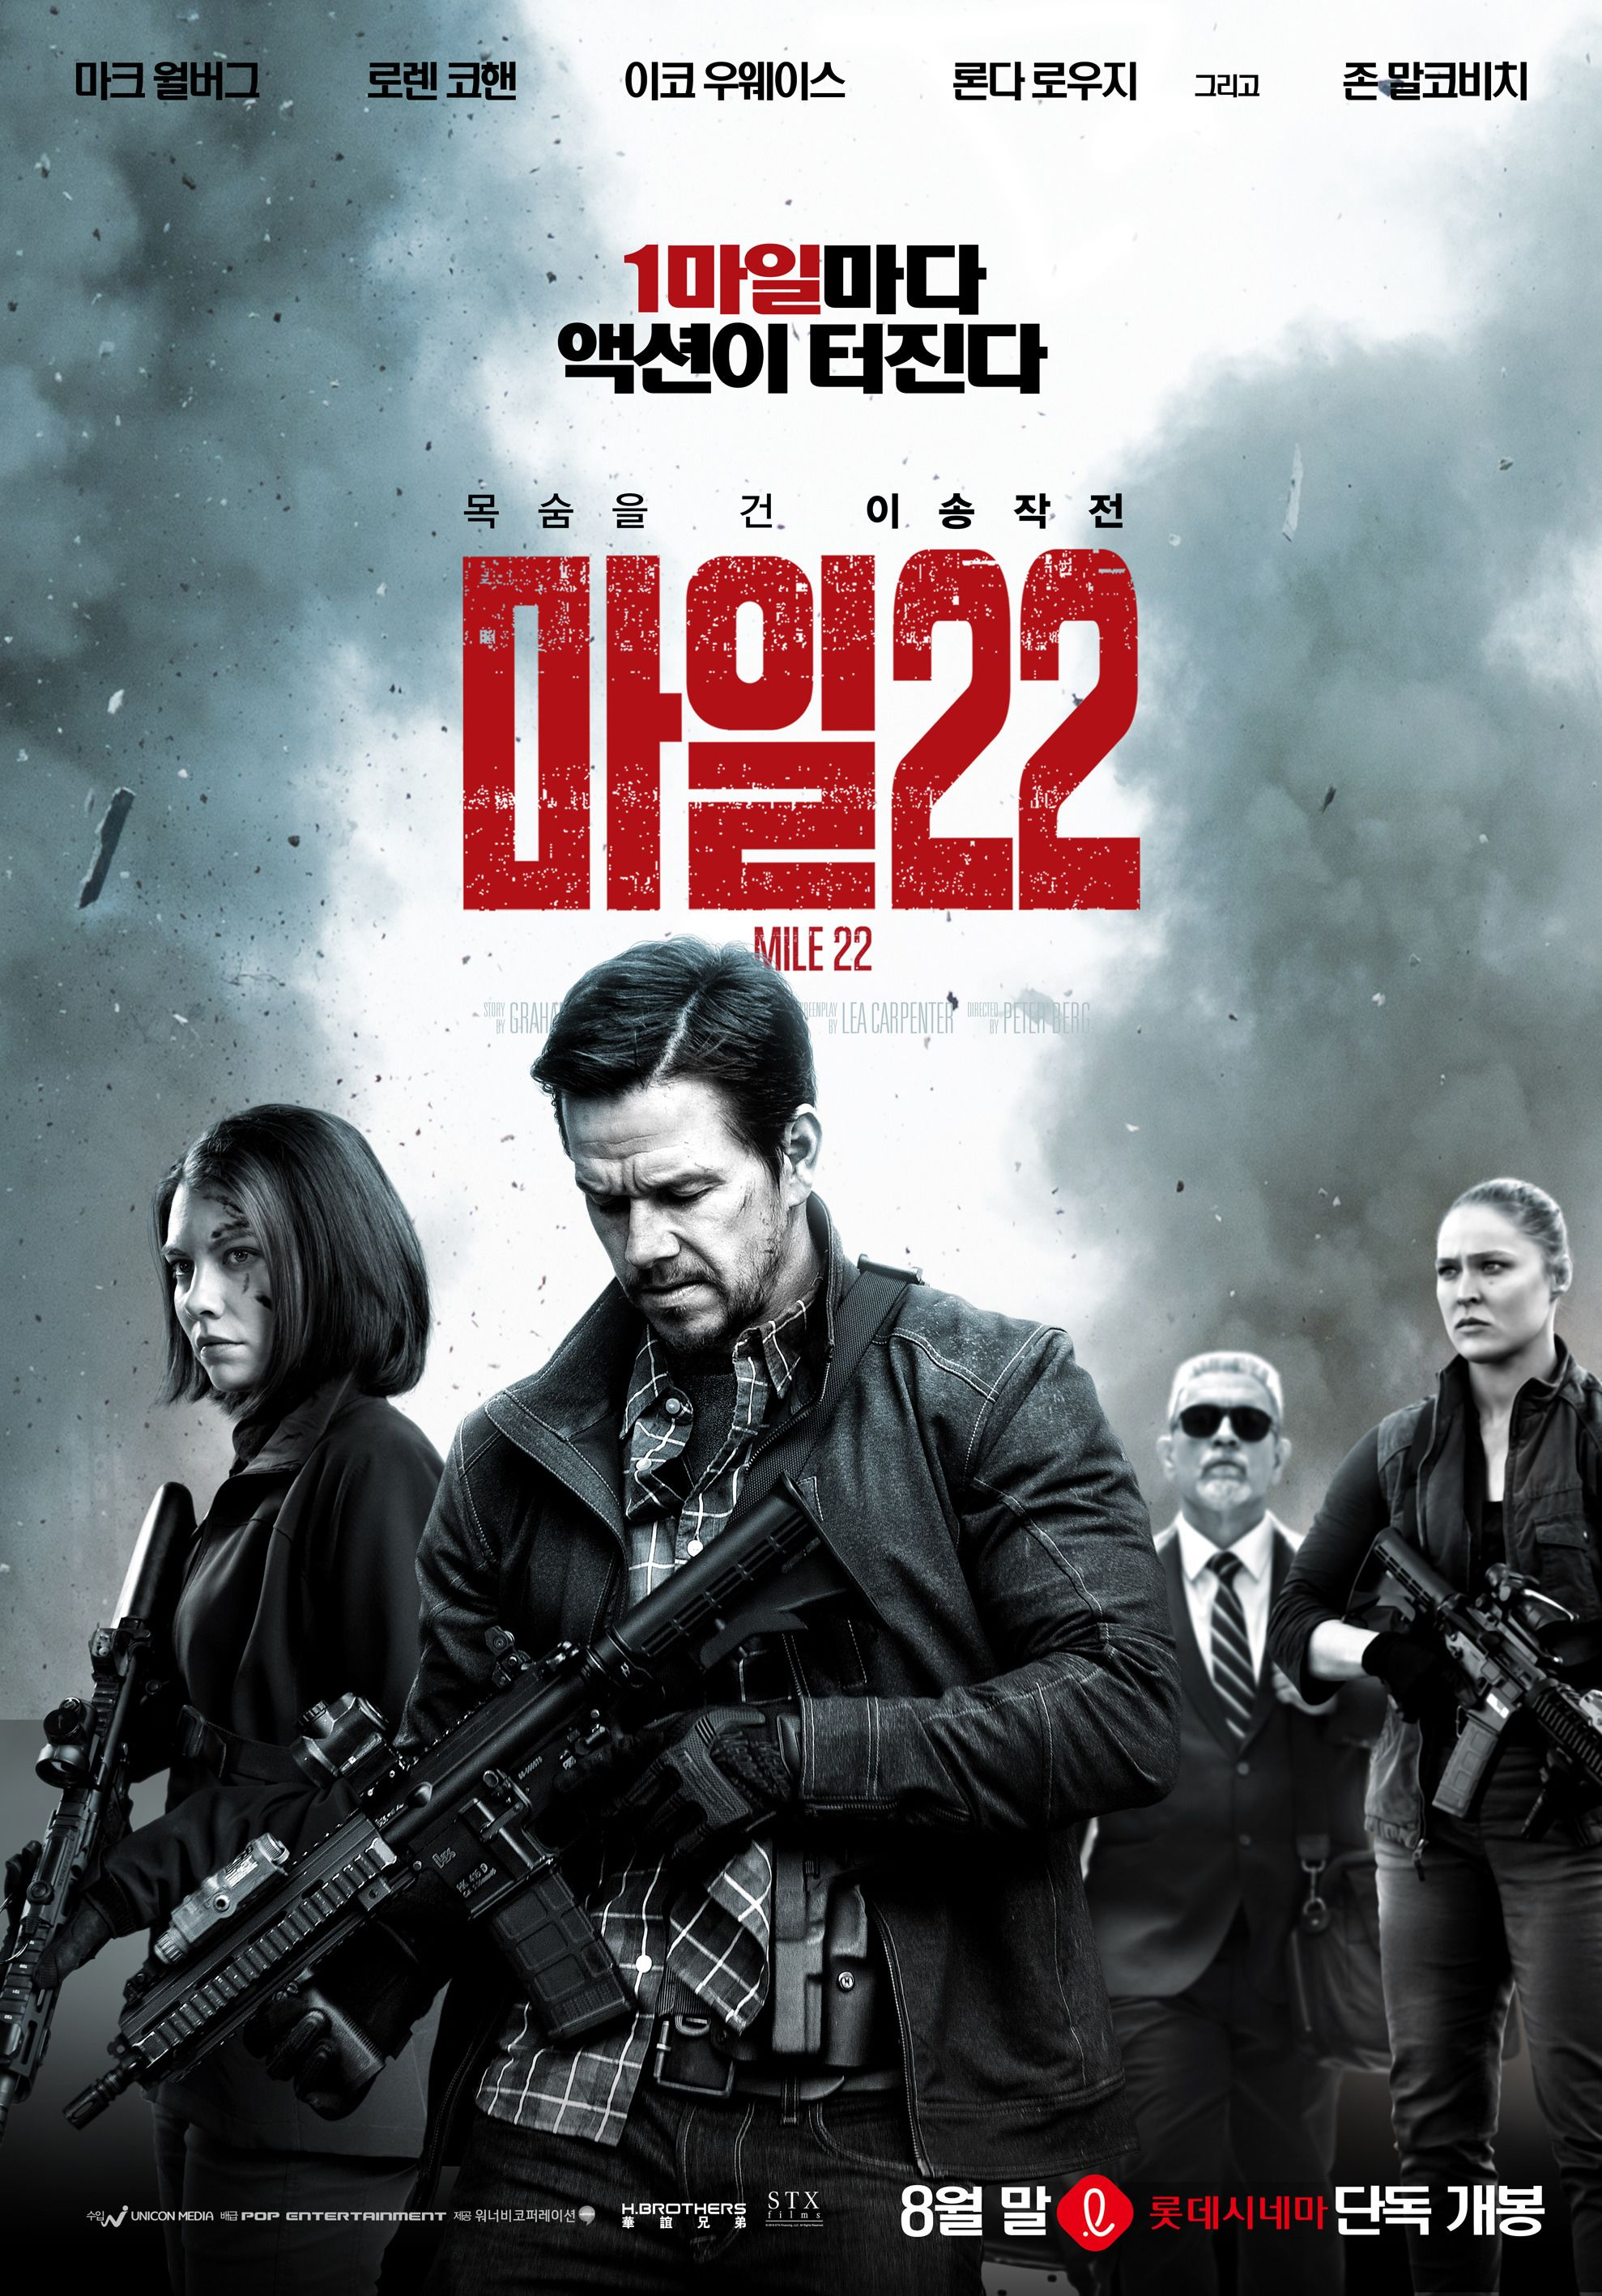 Mile 22 (2018) Action movie poster, Full movies online